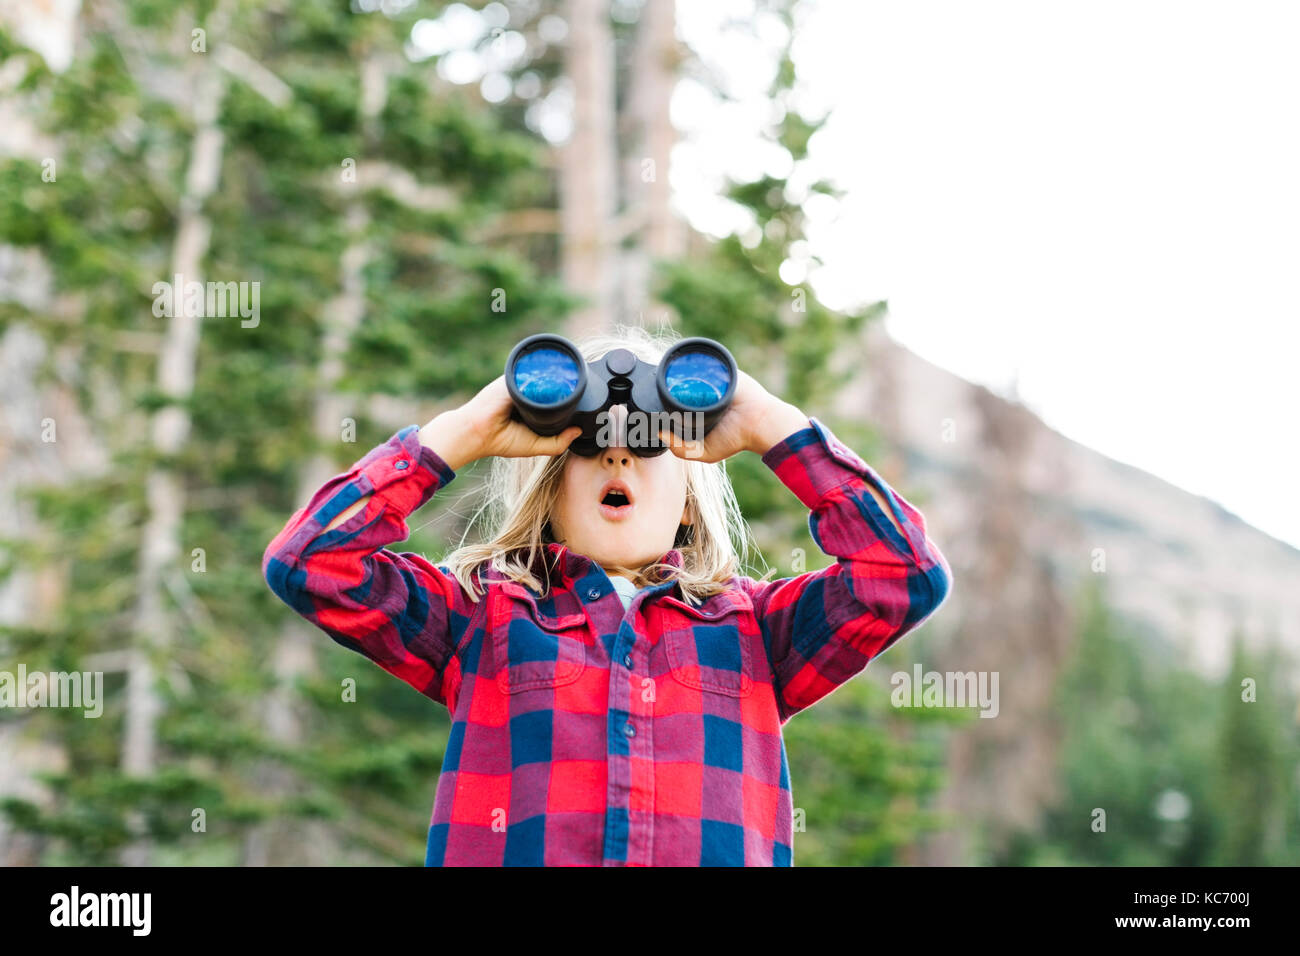 Boy (6-7) using binoculars in forest - Stock Image